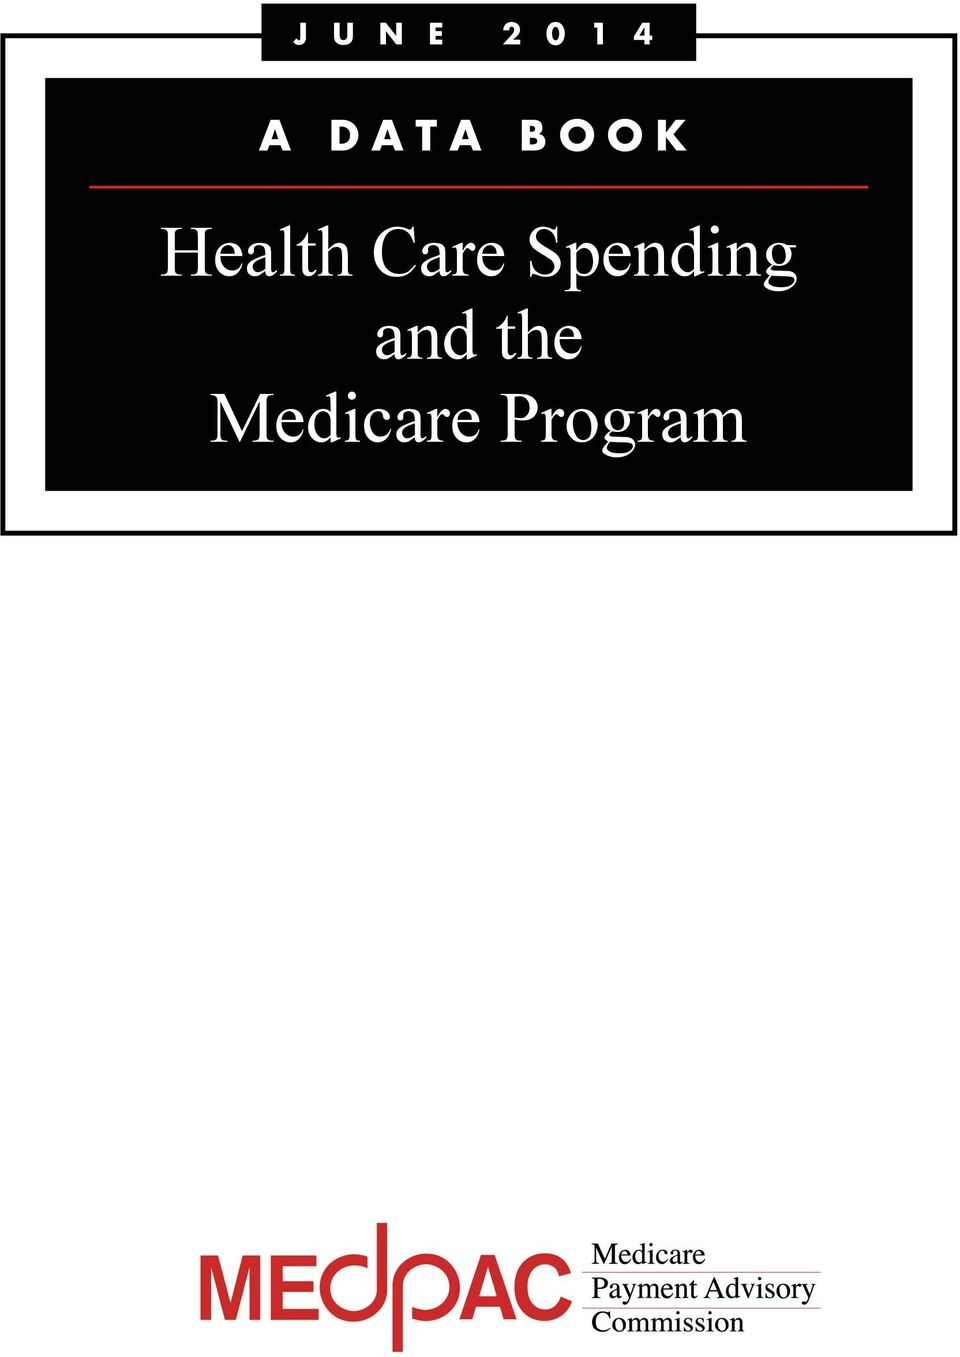 Care Spending and